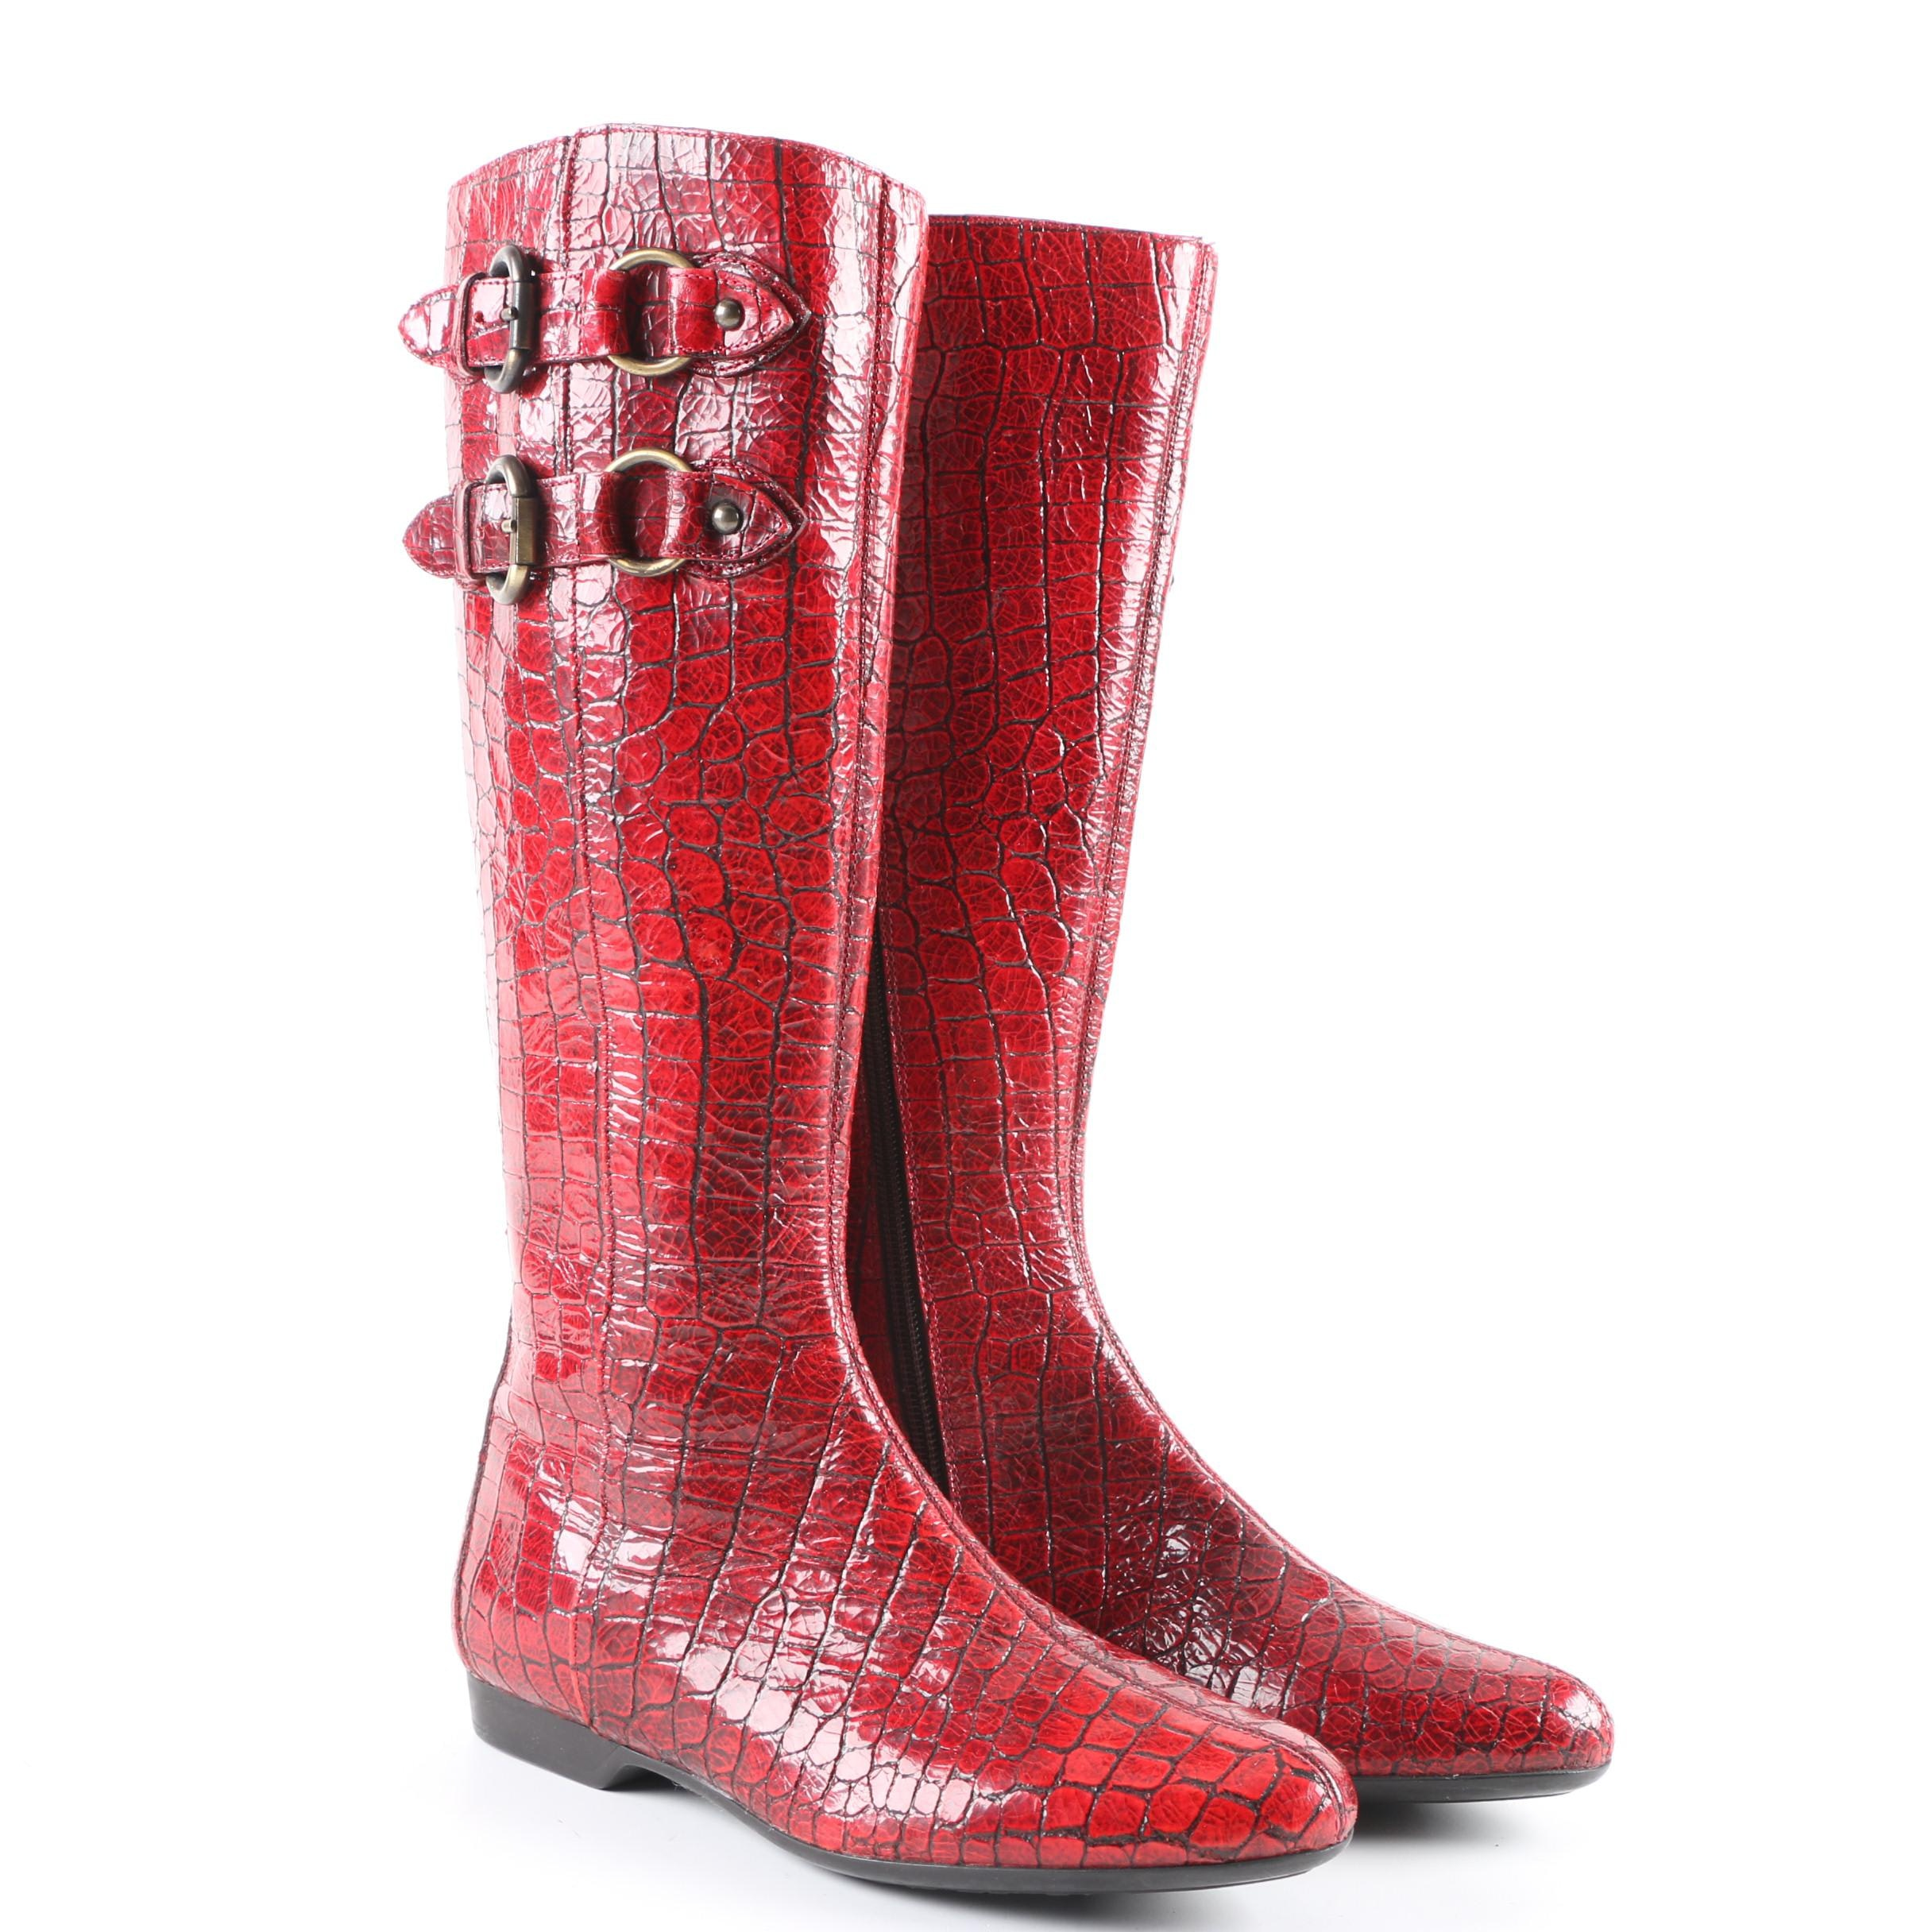 Women's Donald J. Pliner Alligator Embossed Red Leather Boots